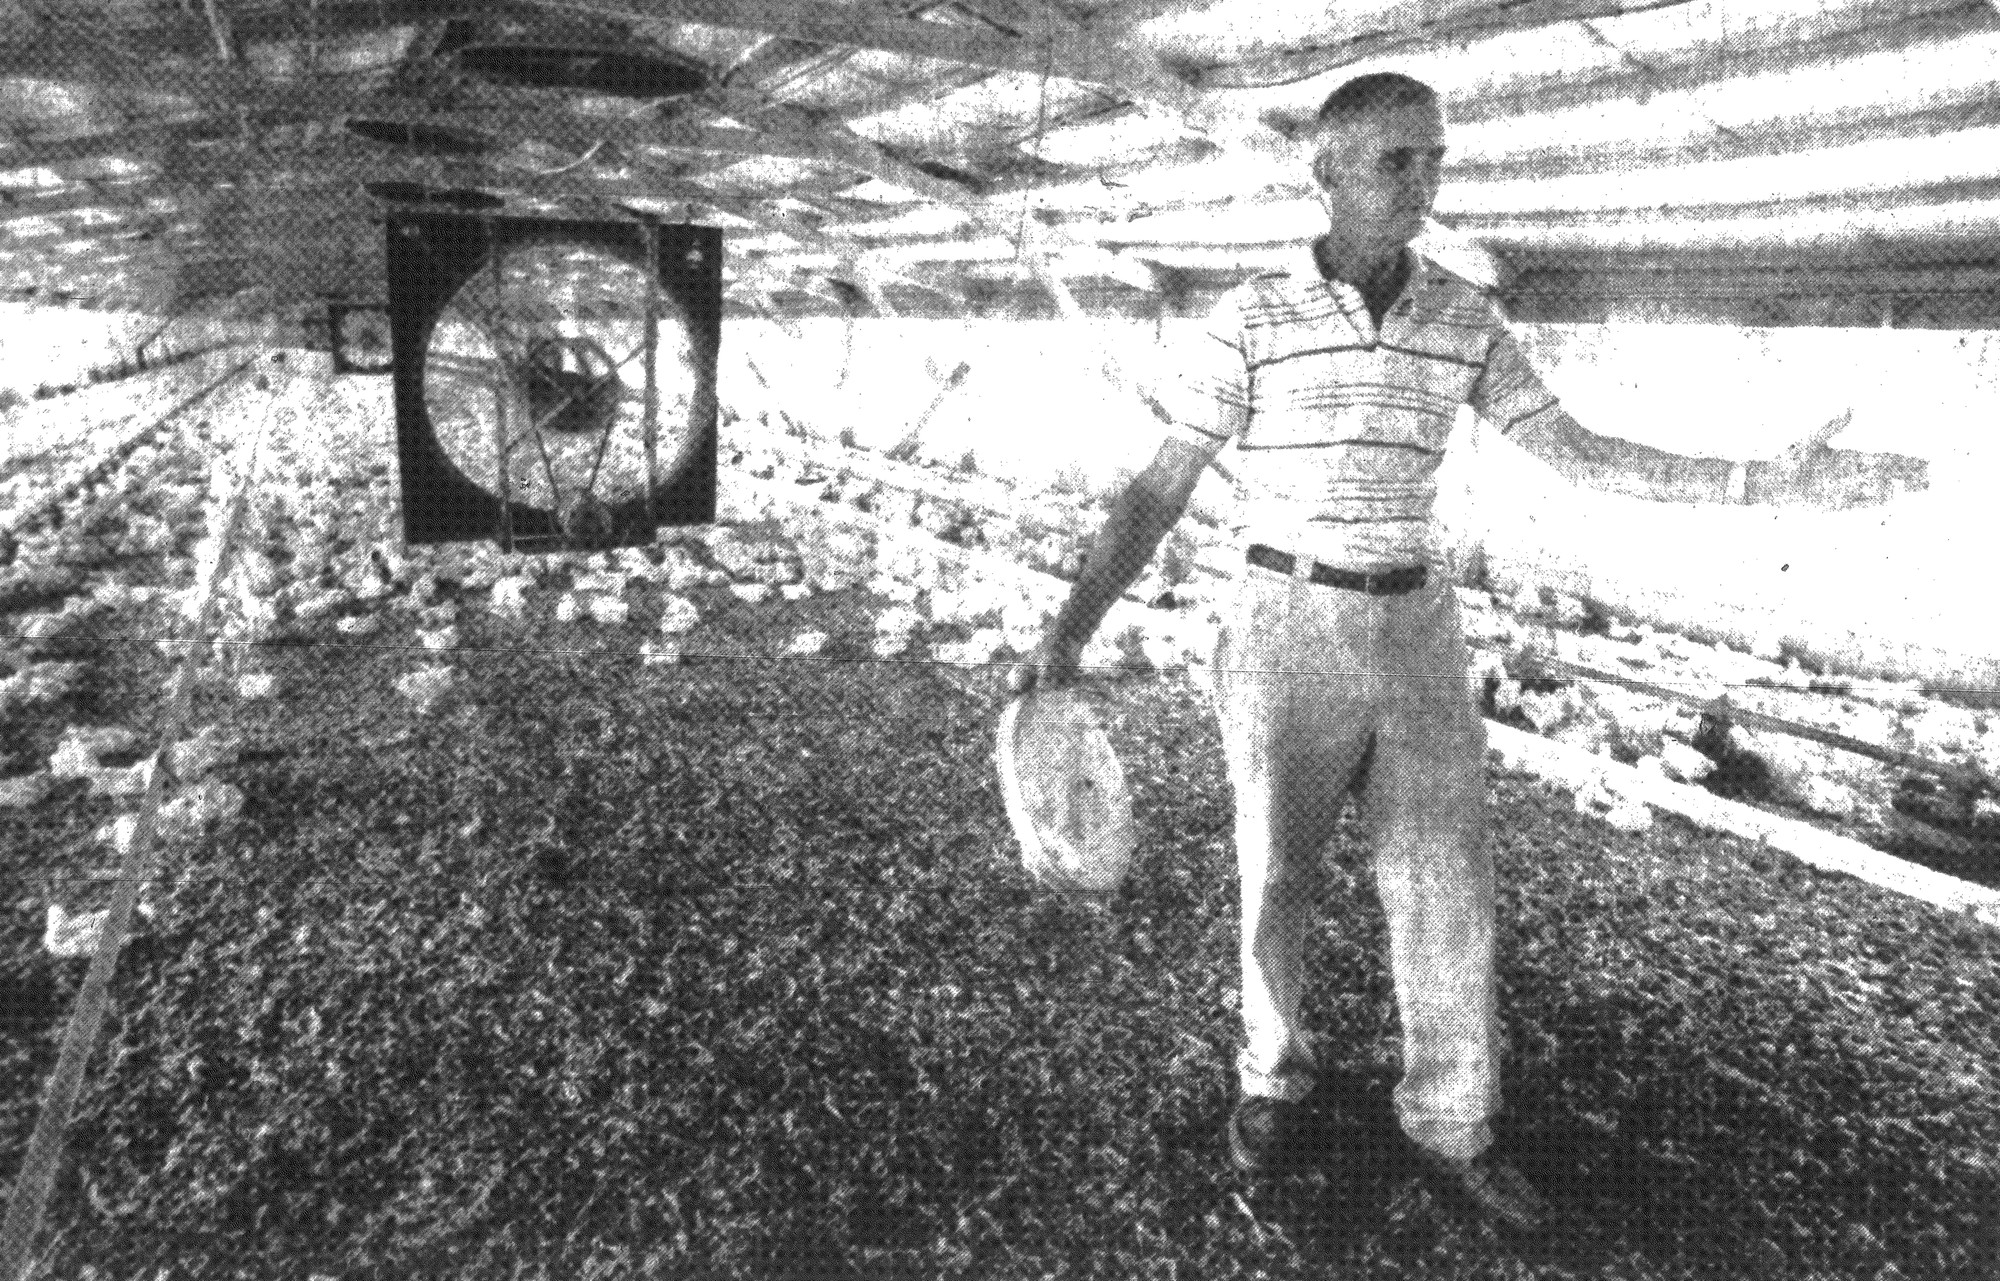 1993 - Gilbert Barkley checks the temperature in one of his chicken coops. During the first week of July, he lost 3,000 chickens when temperatures averaged 100 degrees every day. Barkley sells chickens to Carolina Golden Products.